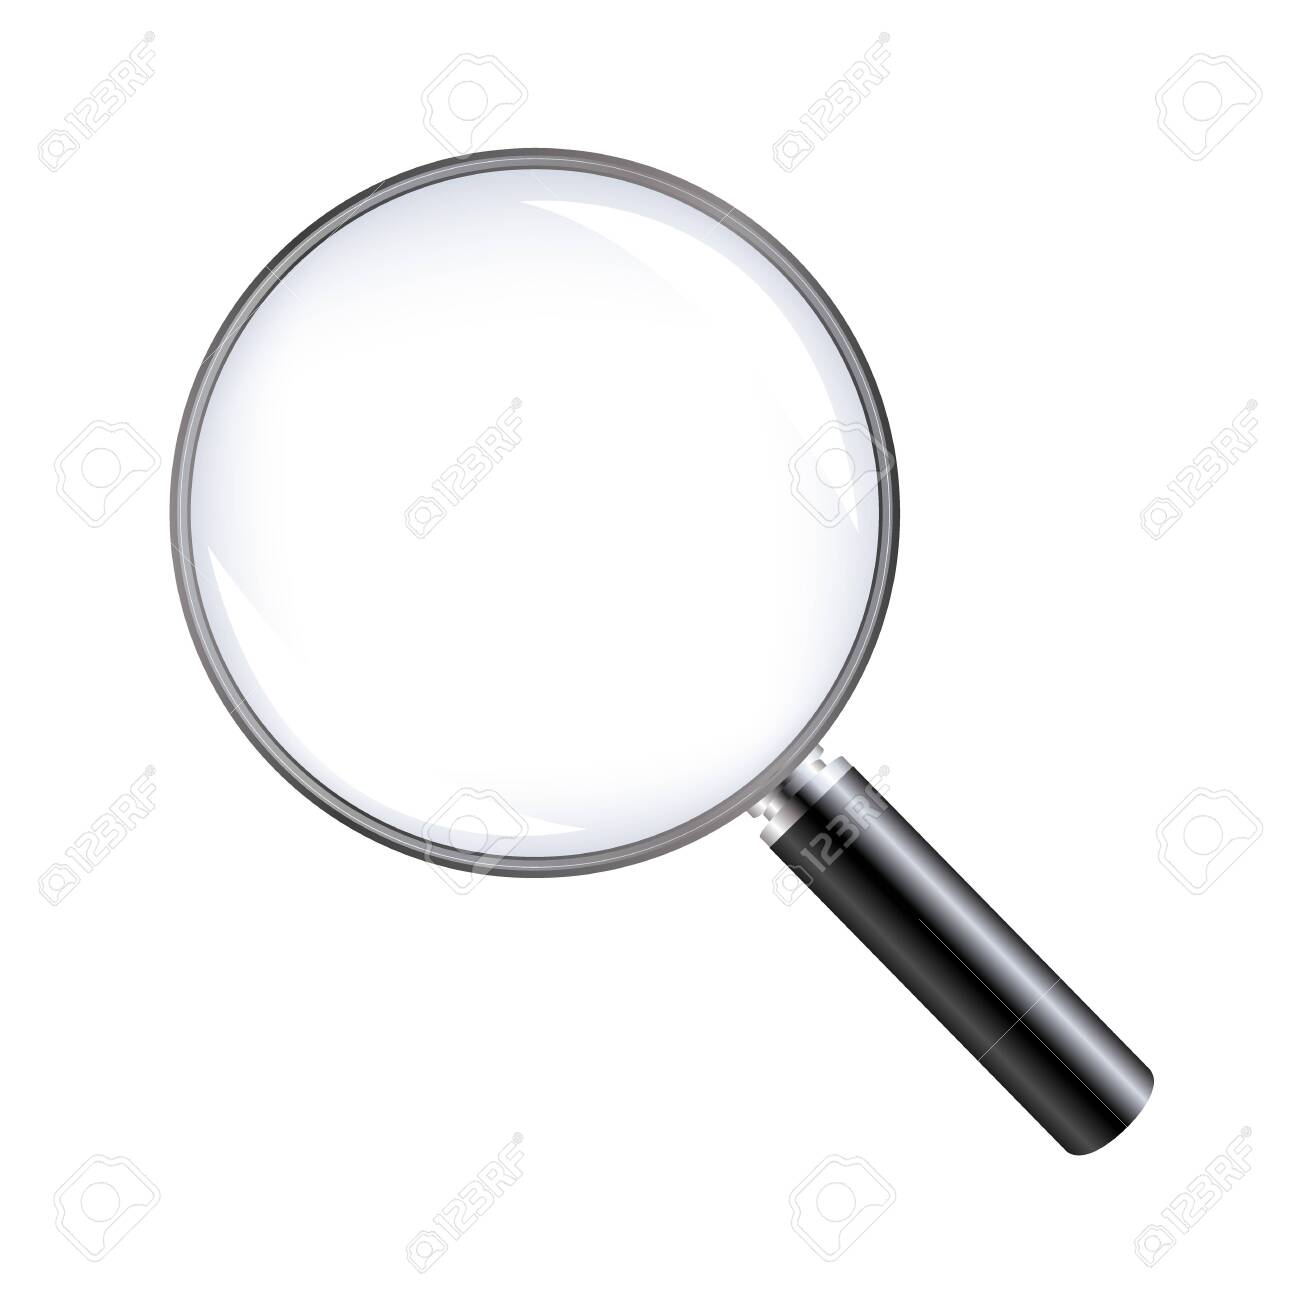 Magnifying Glass With White background - 153637689